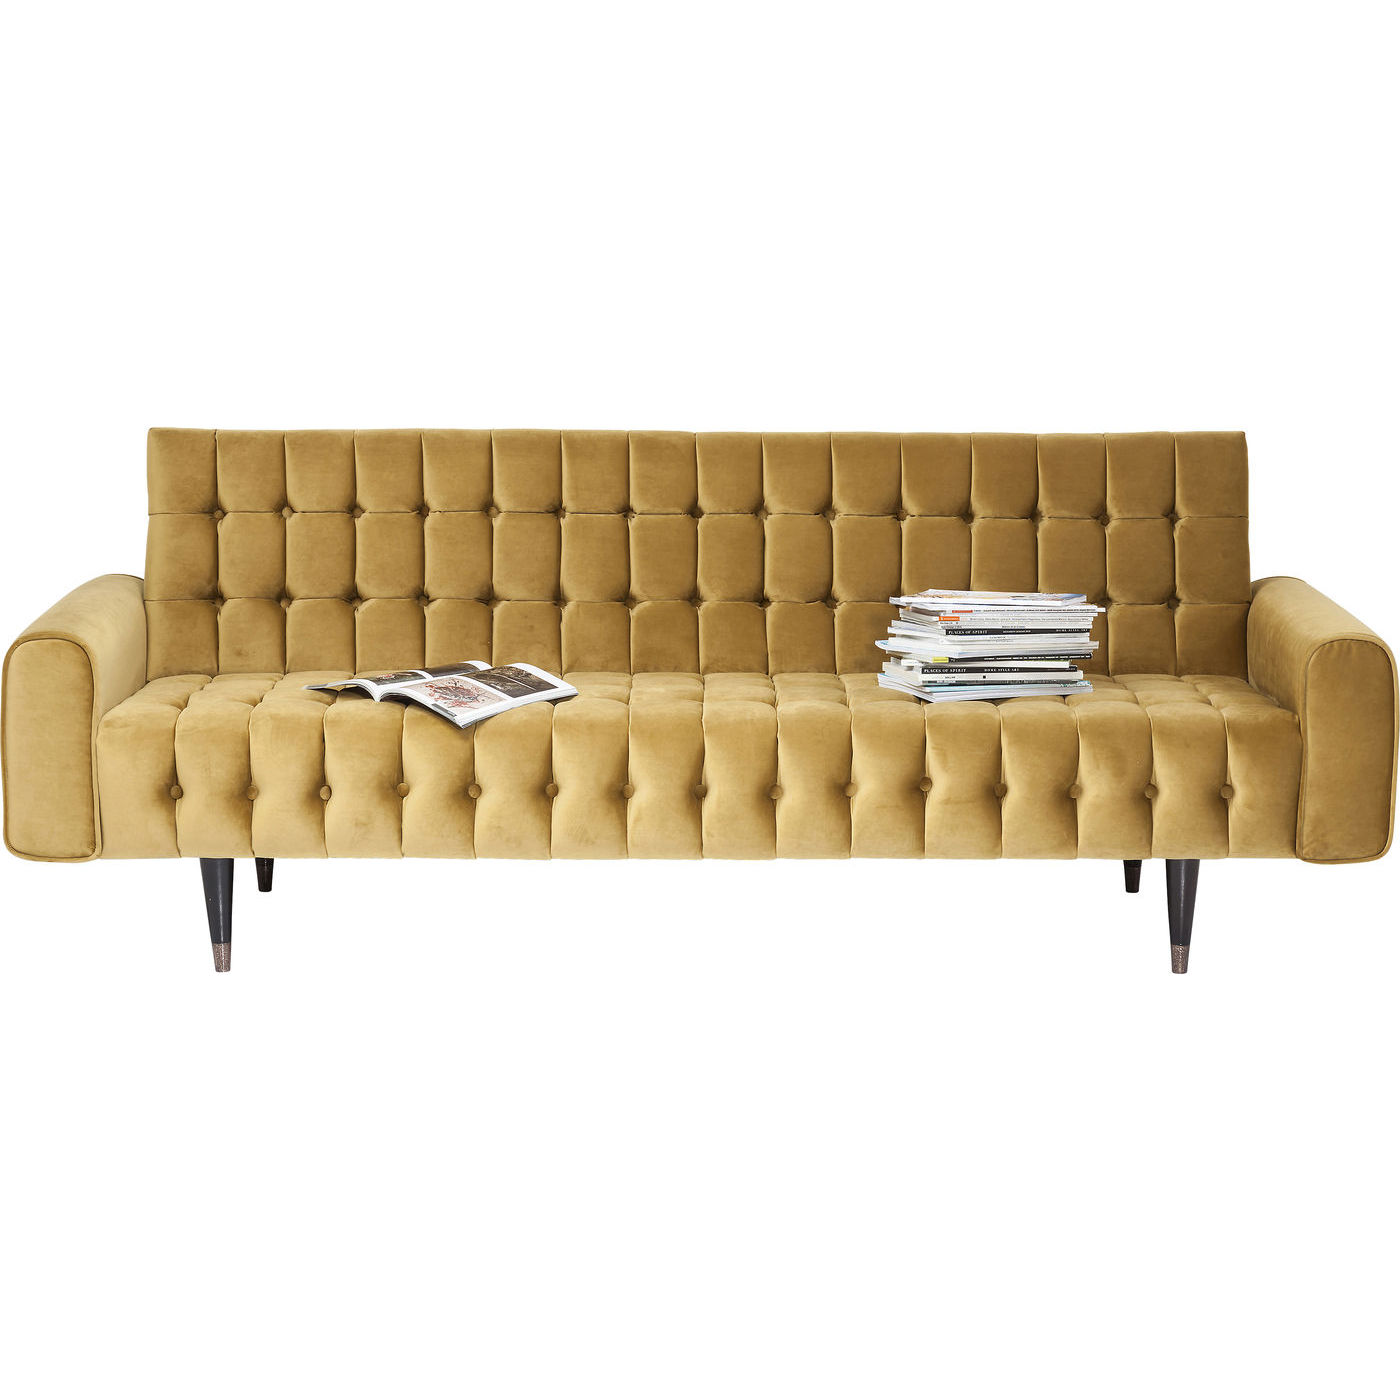 lkker retro milchbar honey 3 personers sofa fra kare. Black Bedroom Furniture Sets. Home Design Ideas